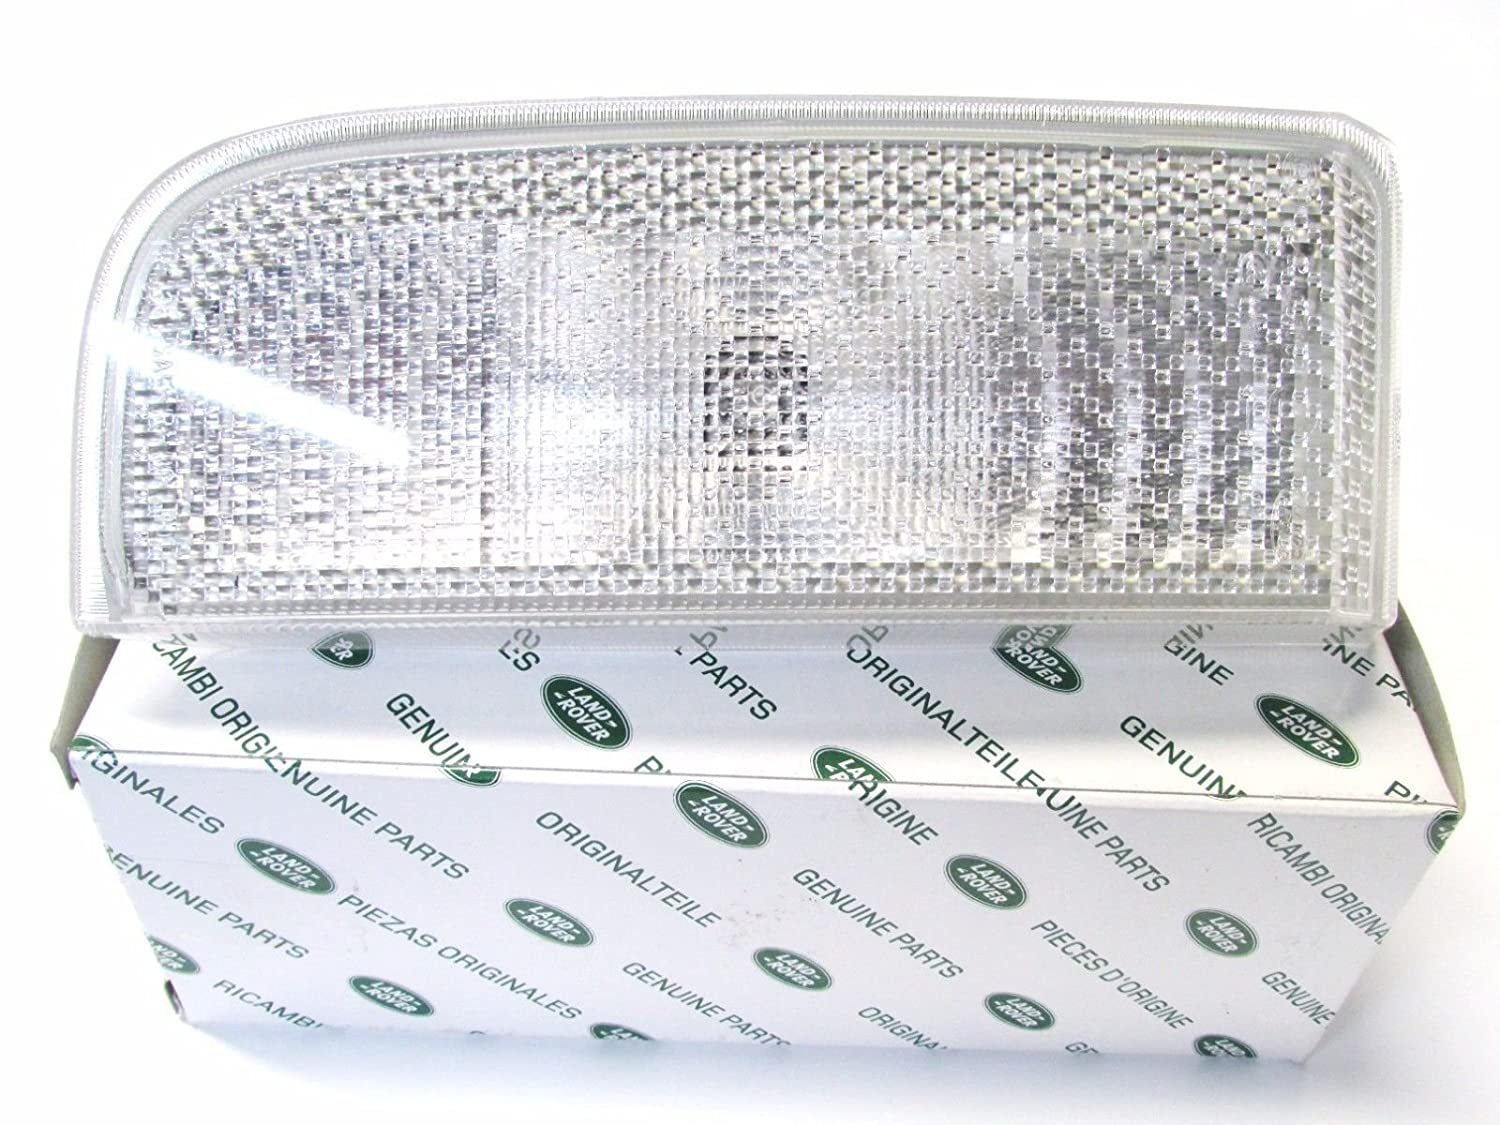 XFD000053 LAND ROVER RANGE ROVER L322 REAR BACKUP REVERSE LAMP SET XFD000043